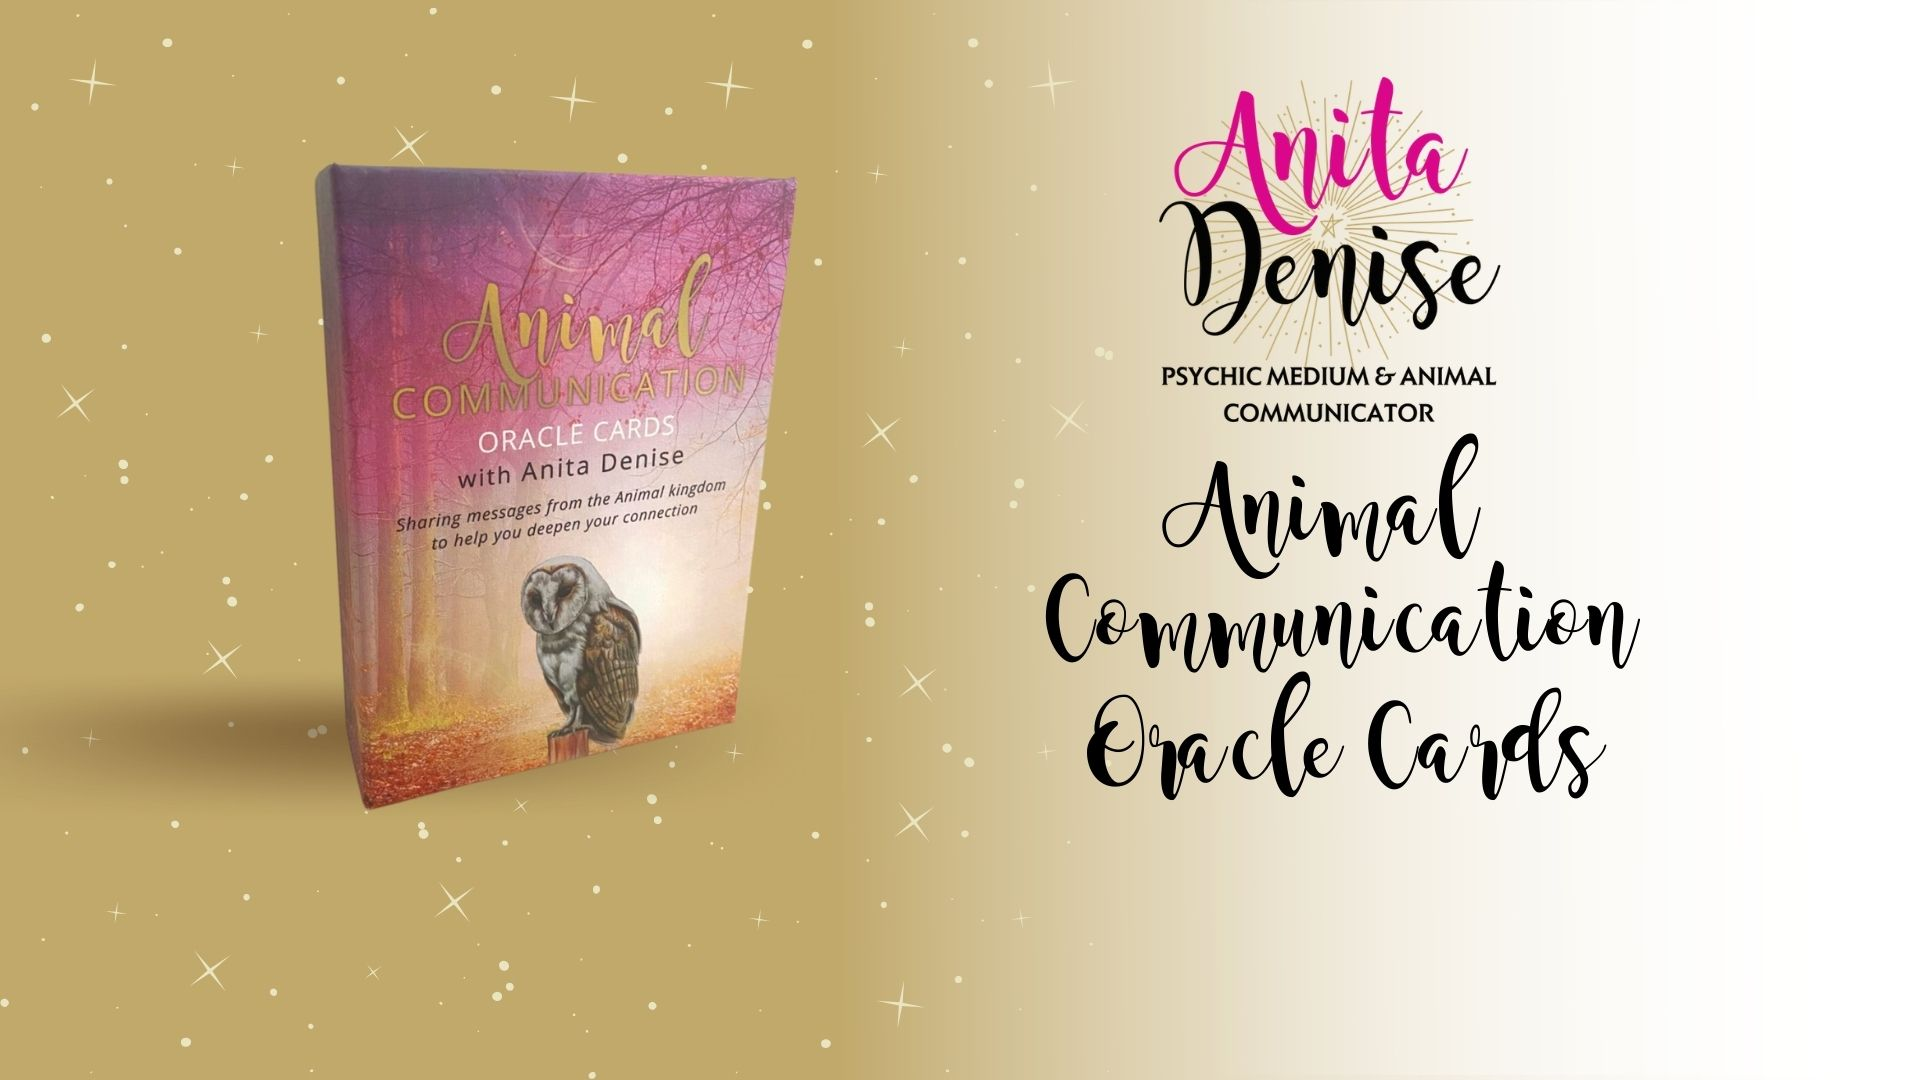 Aniaml Communication Oracle Cards